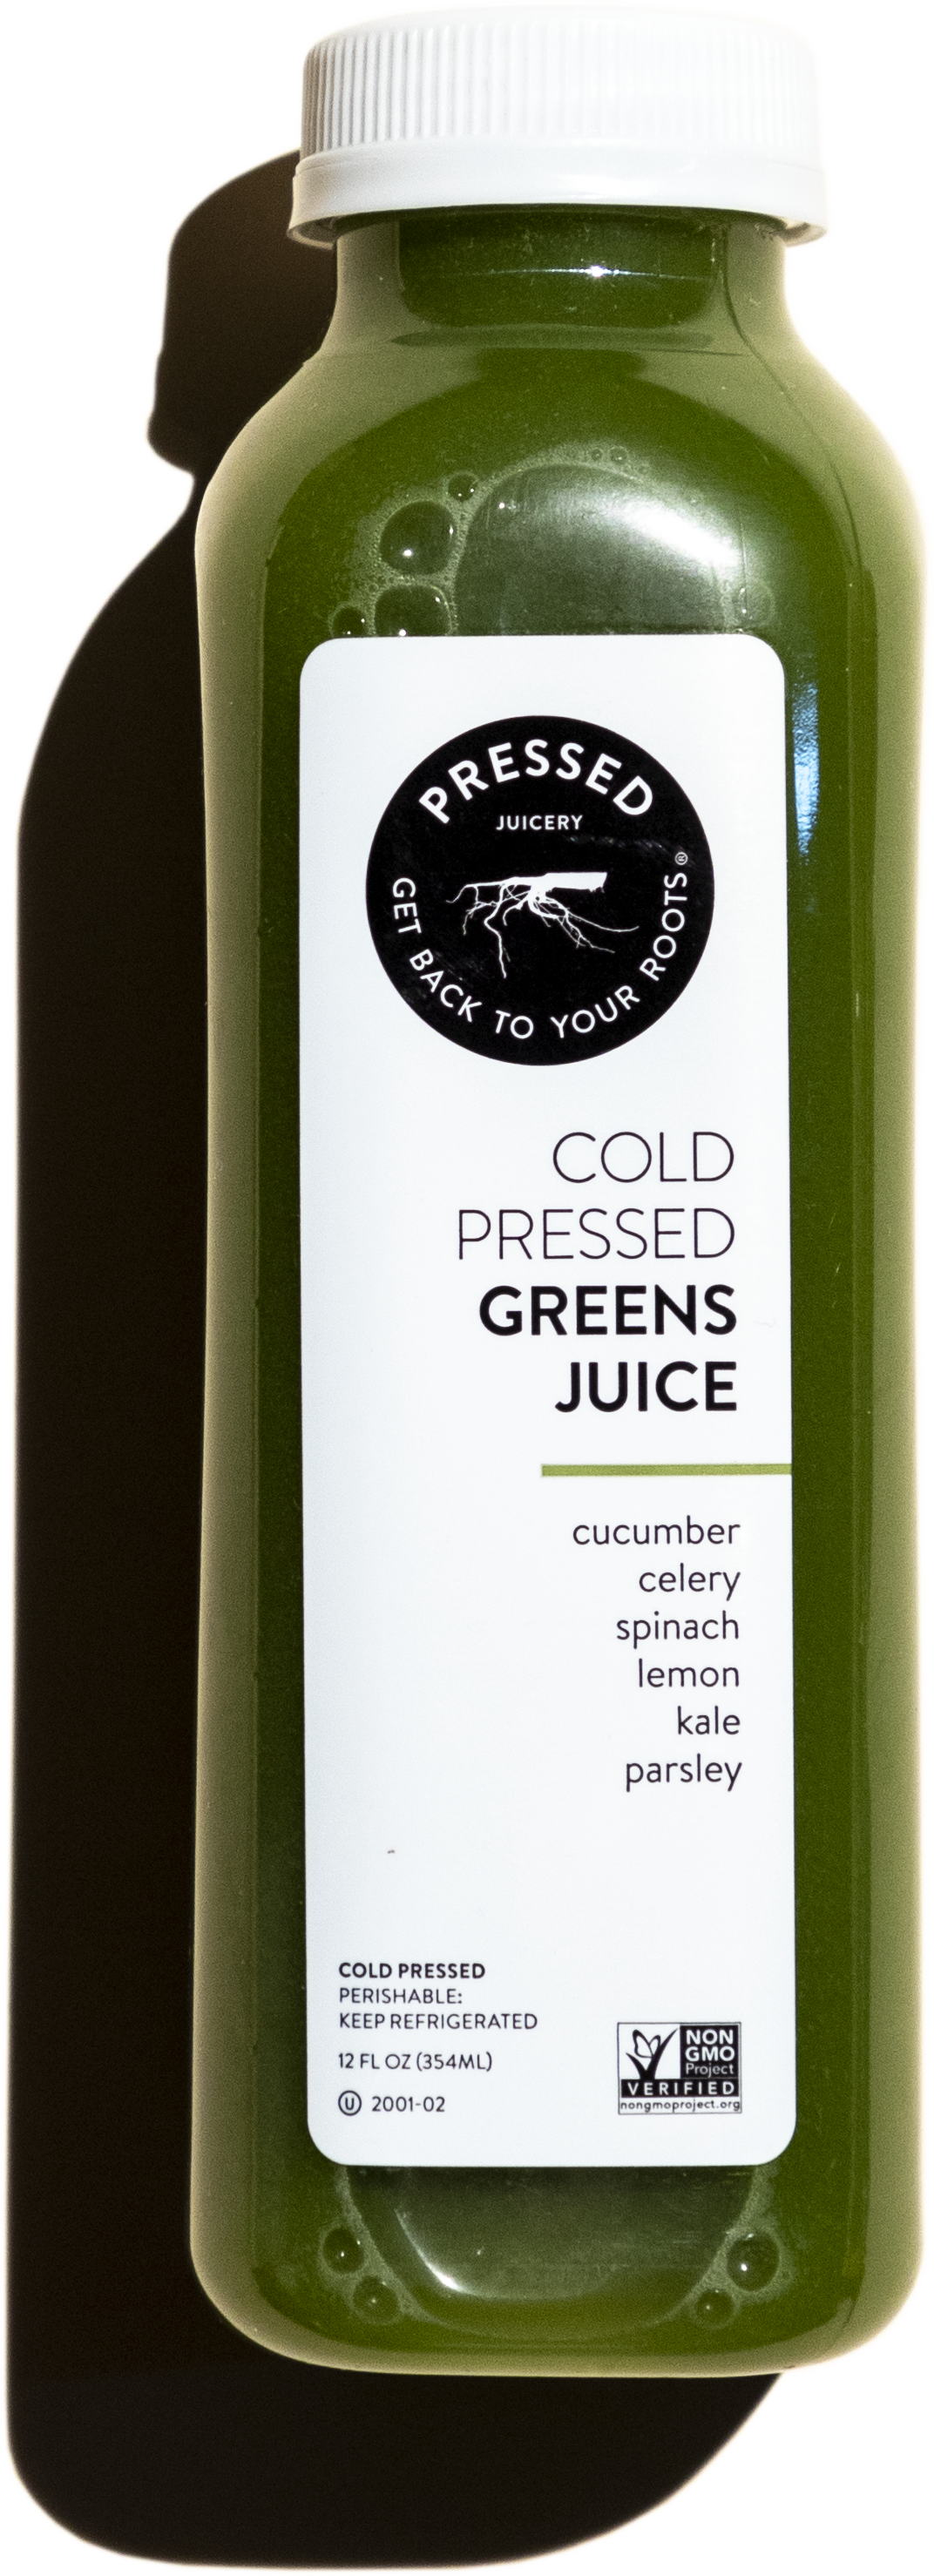 pressed juicery greens juice